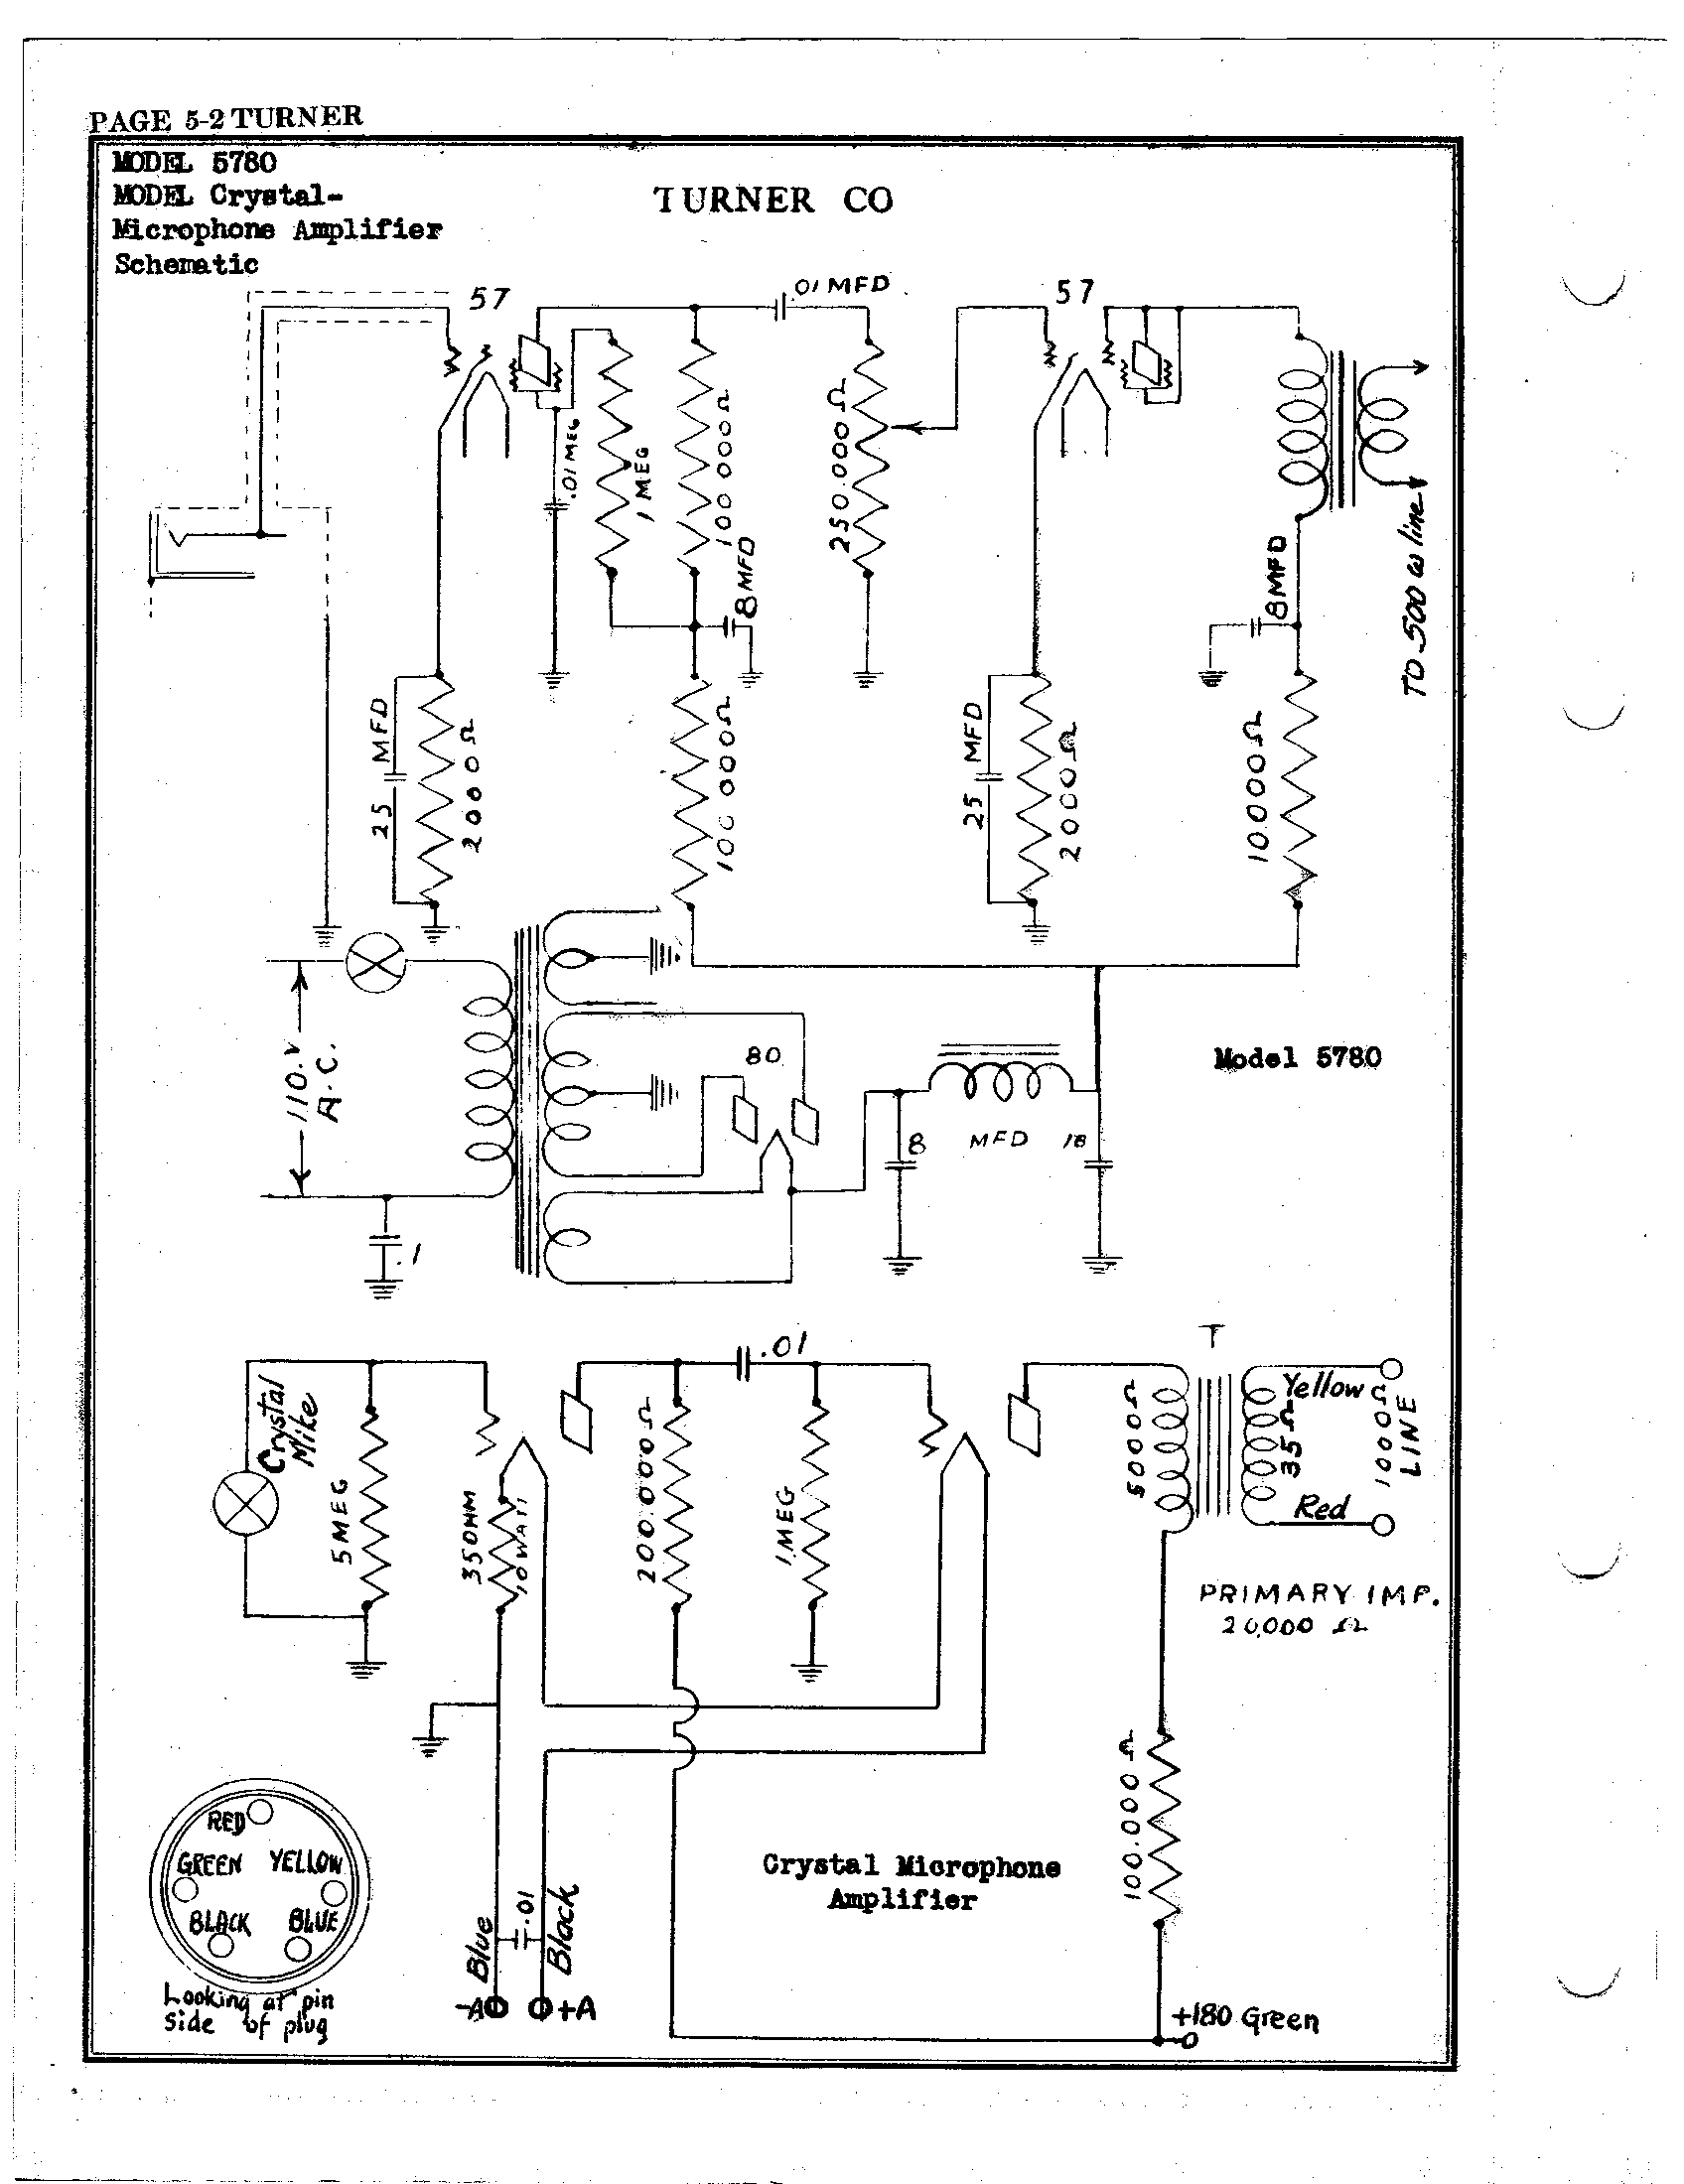 [DIAGRAM] 6 Pin Cb Microphone Wiring Diagram FULL Version